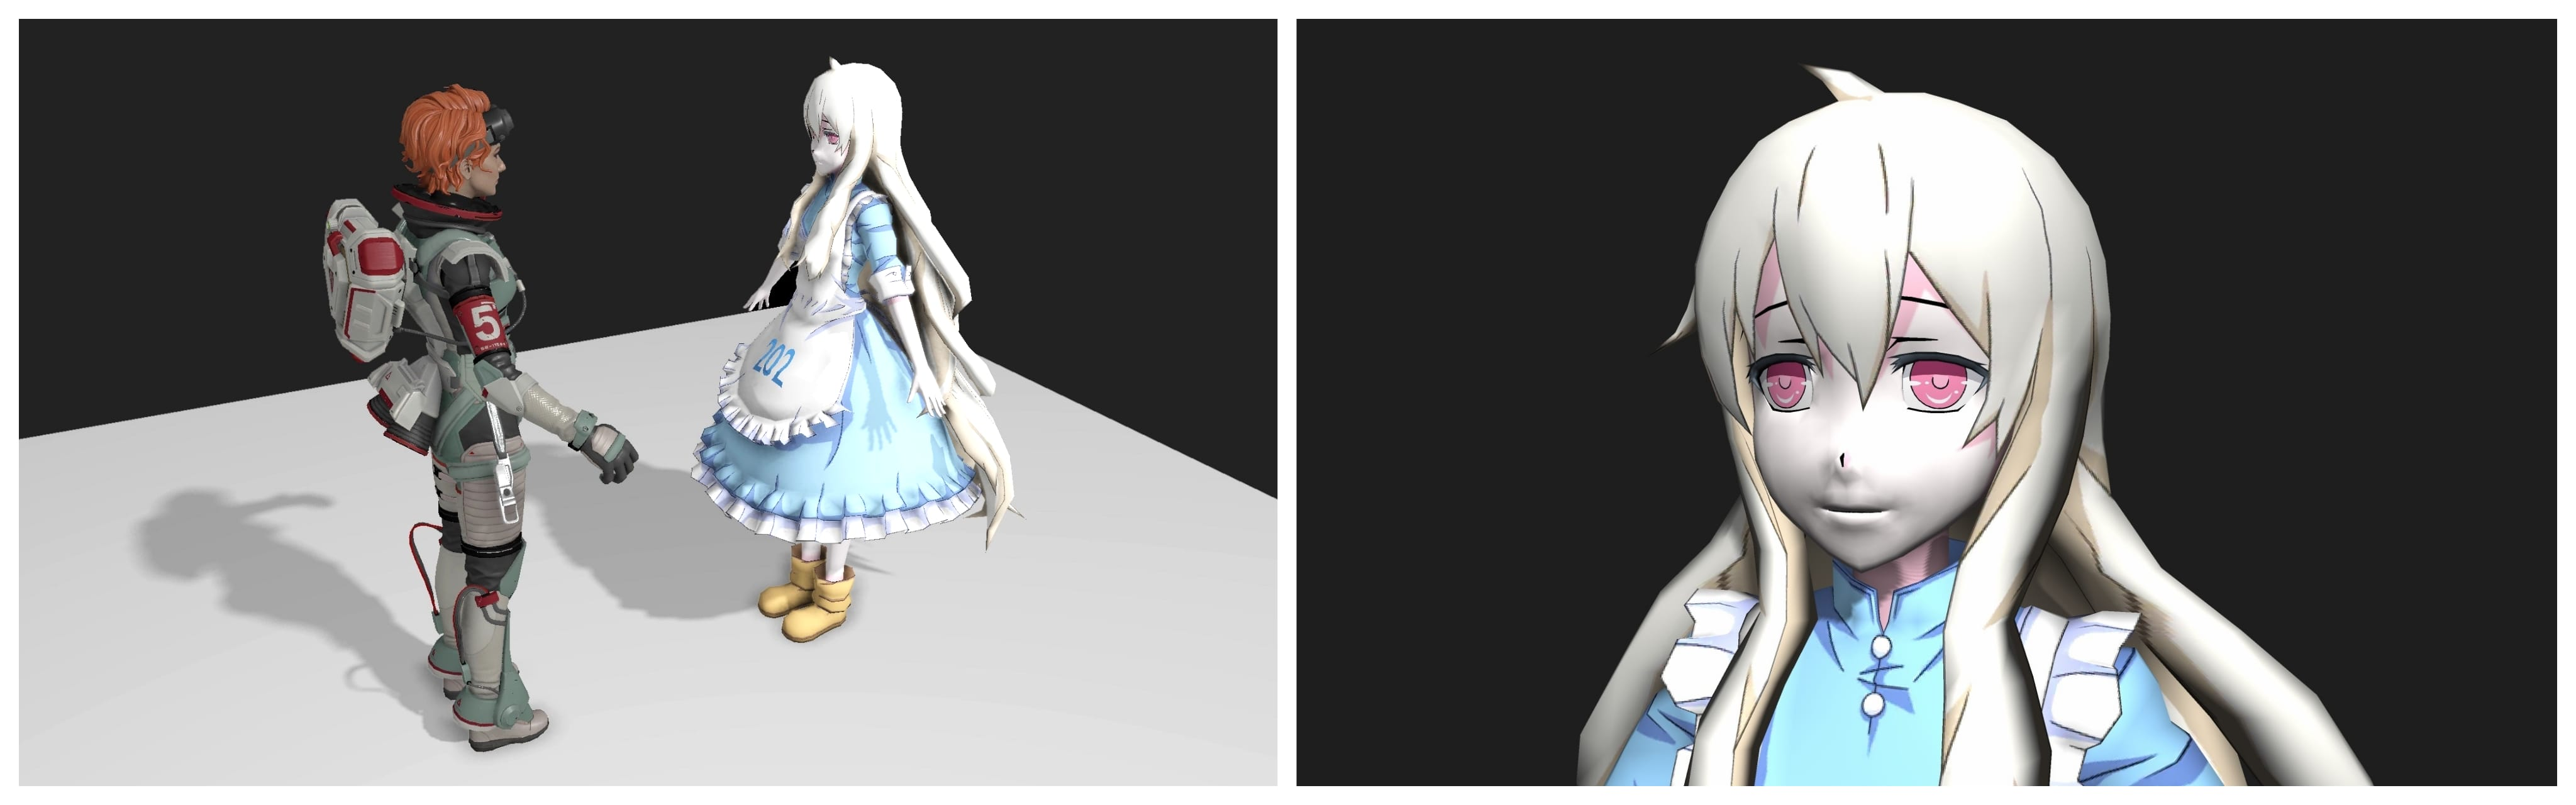 Support PBR, Shadow Effect (PCSS), SSAO